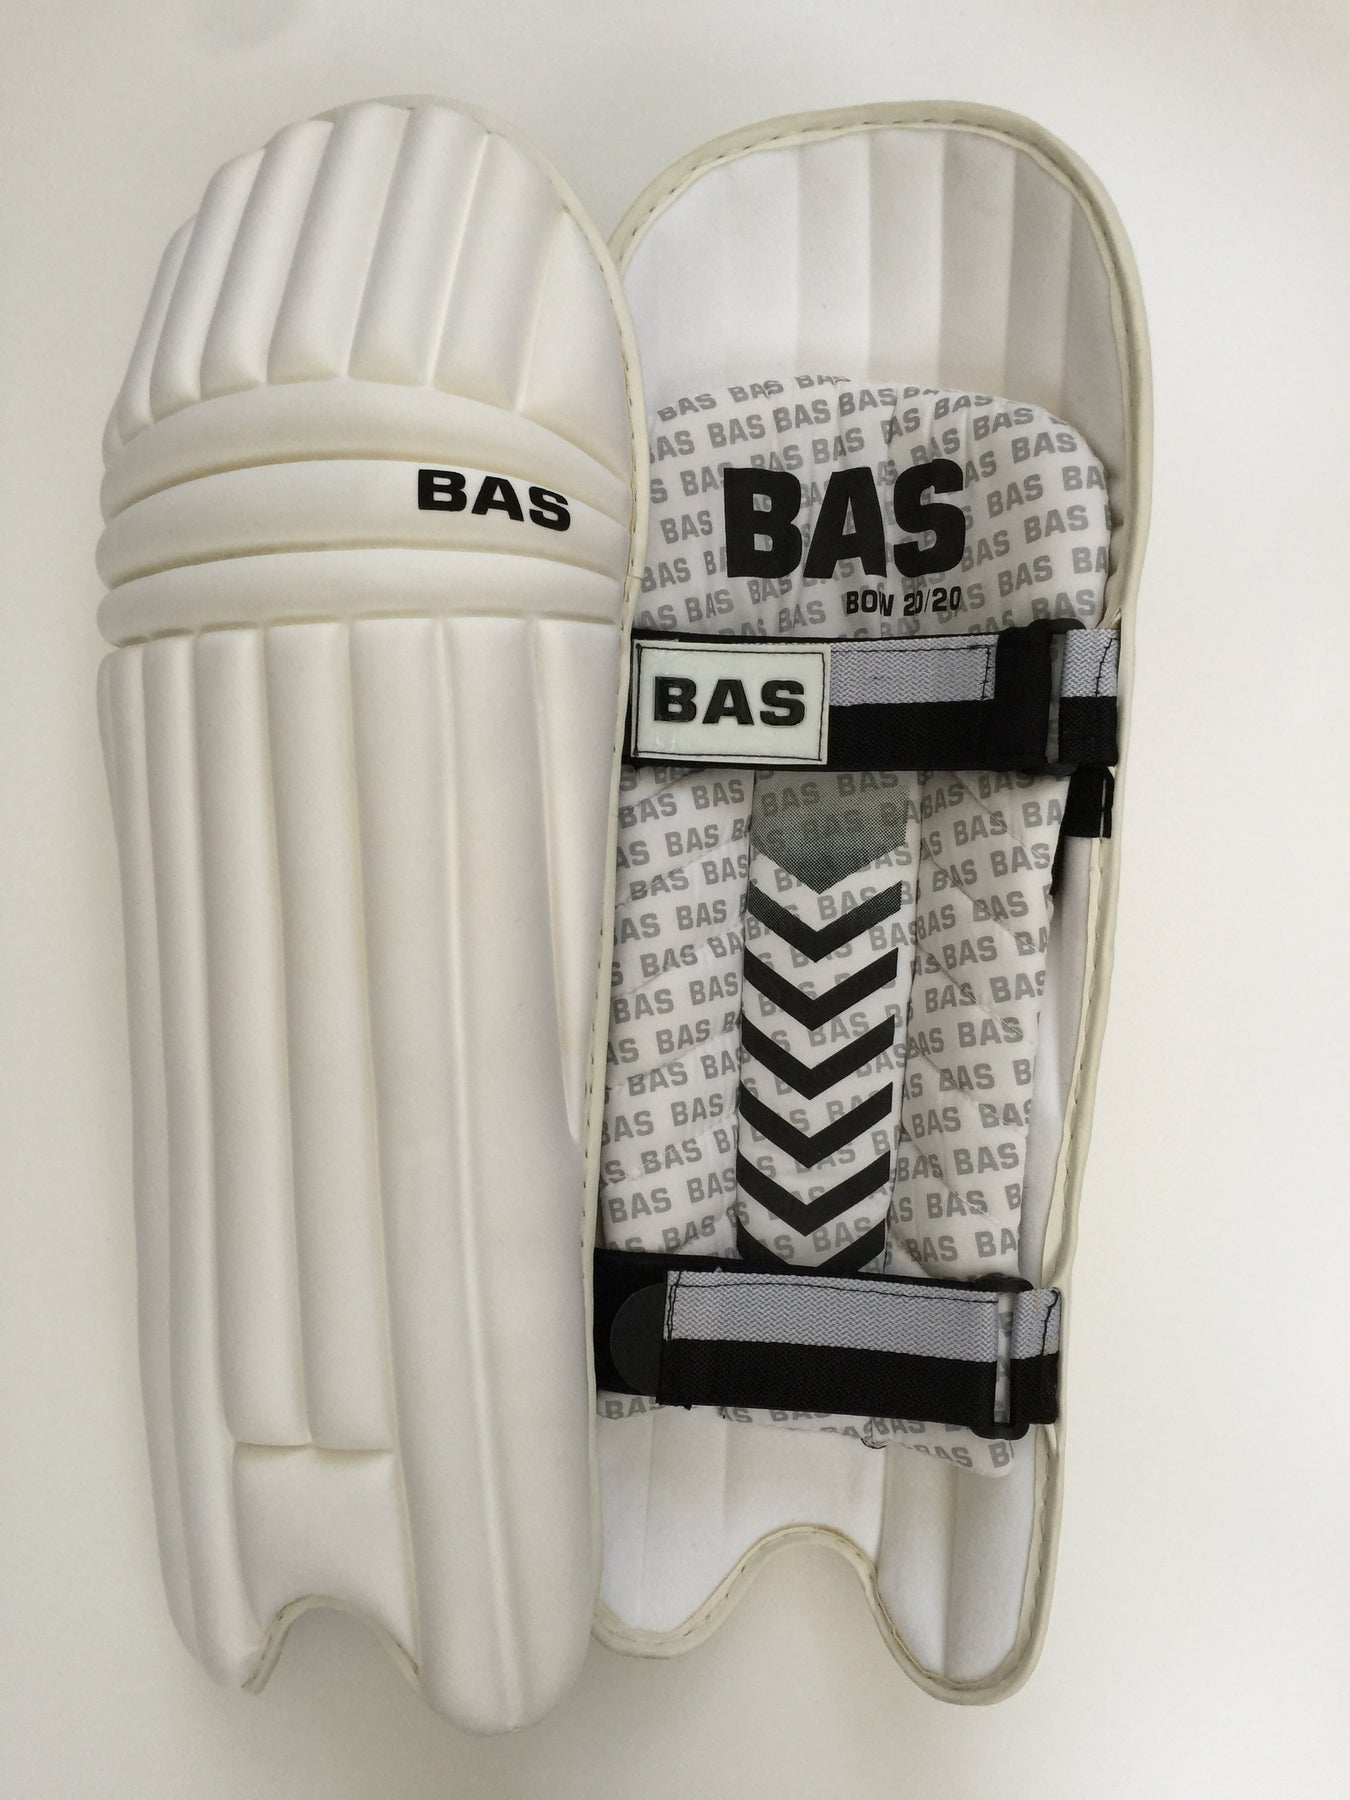 Bas Bow 2020 Moulded Twp Strap Cricket Batting Pads Lightest Pads On Dkp Cricket